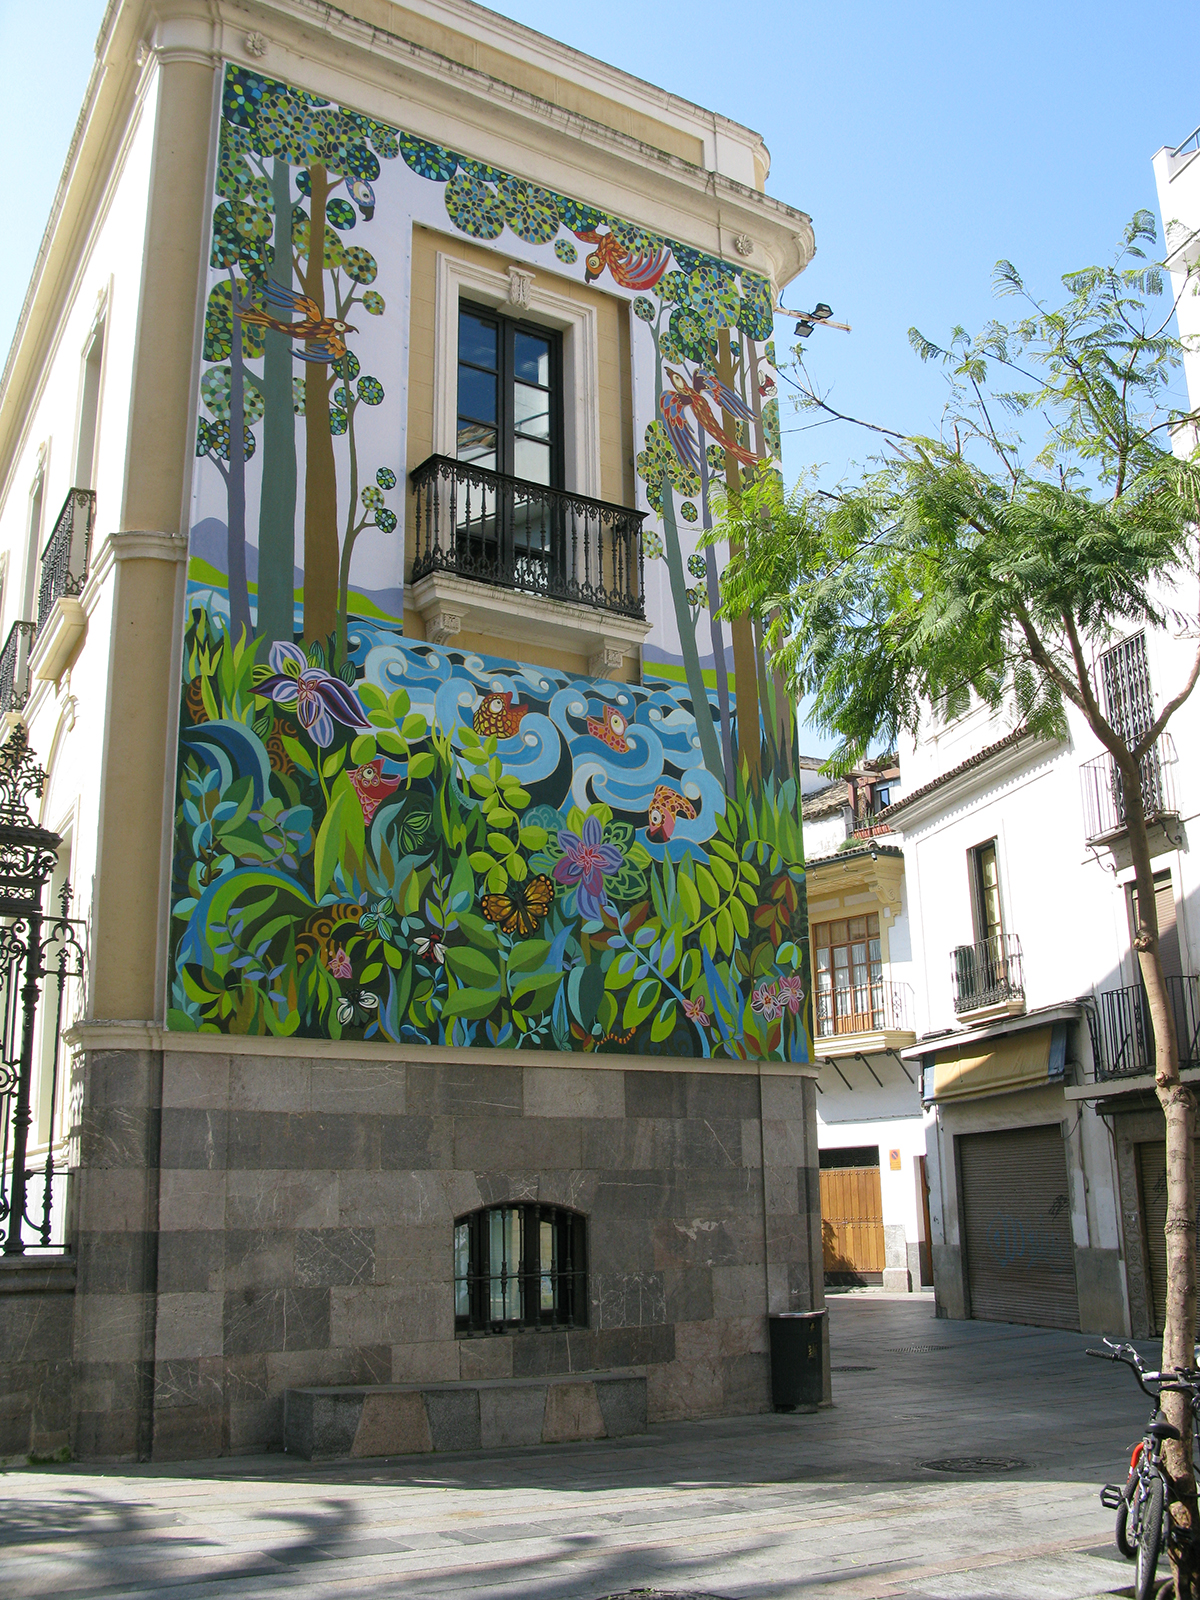 Murals and Windows